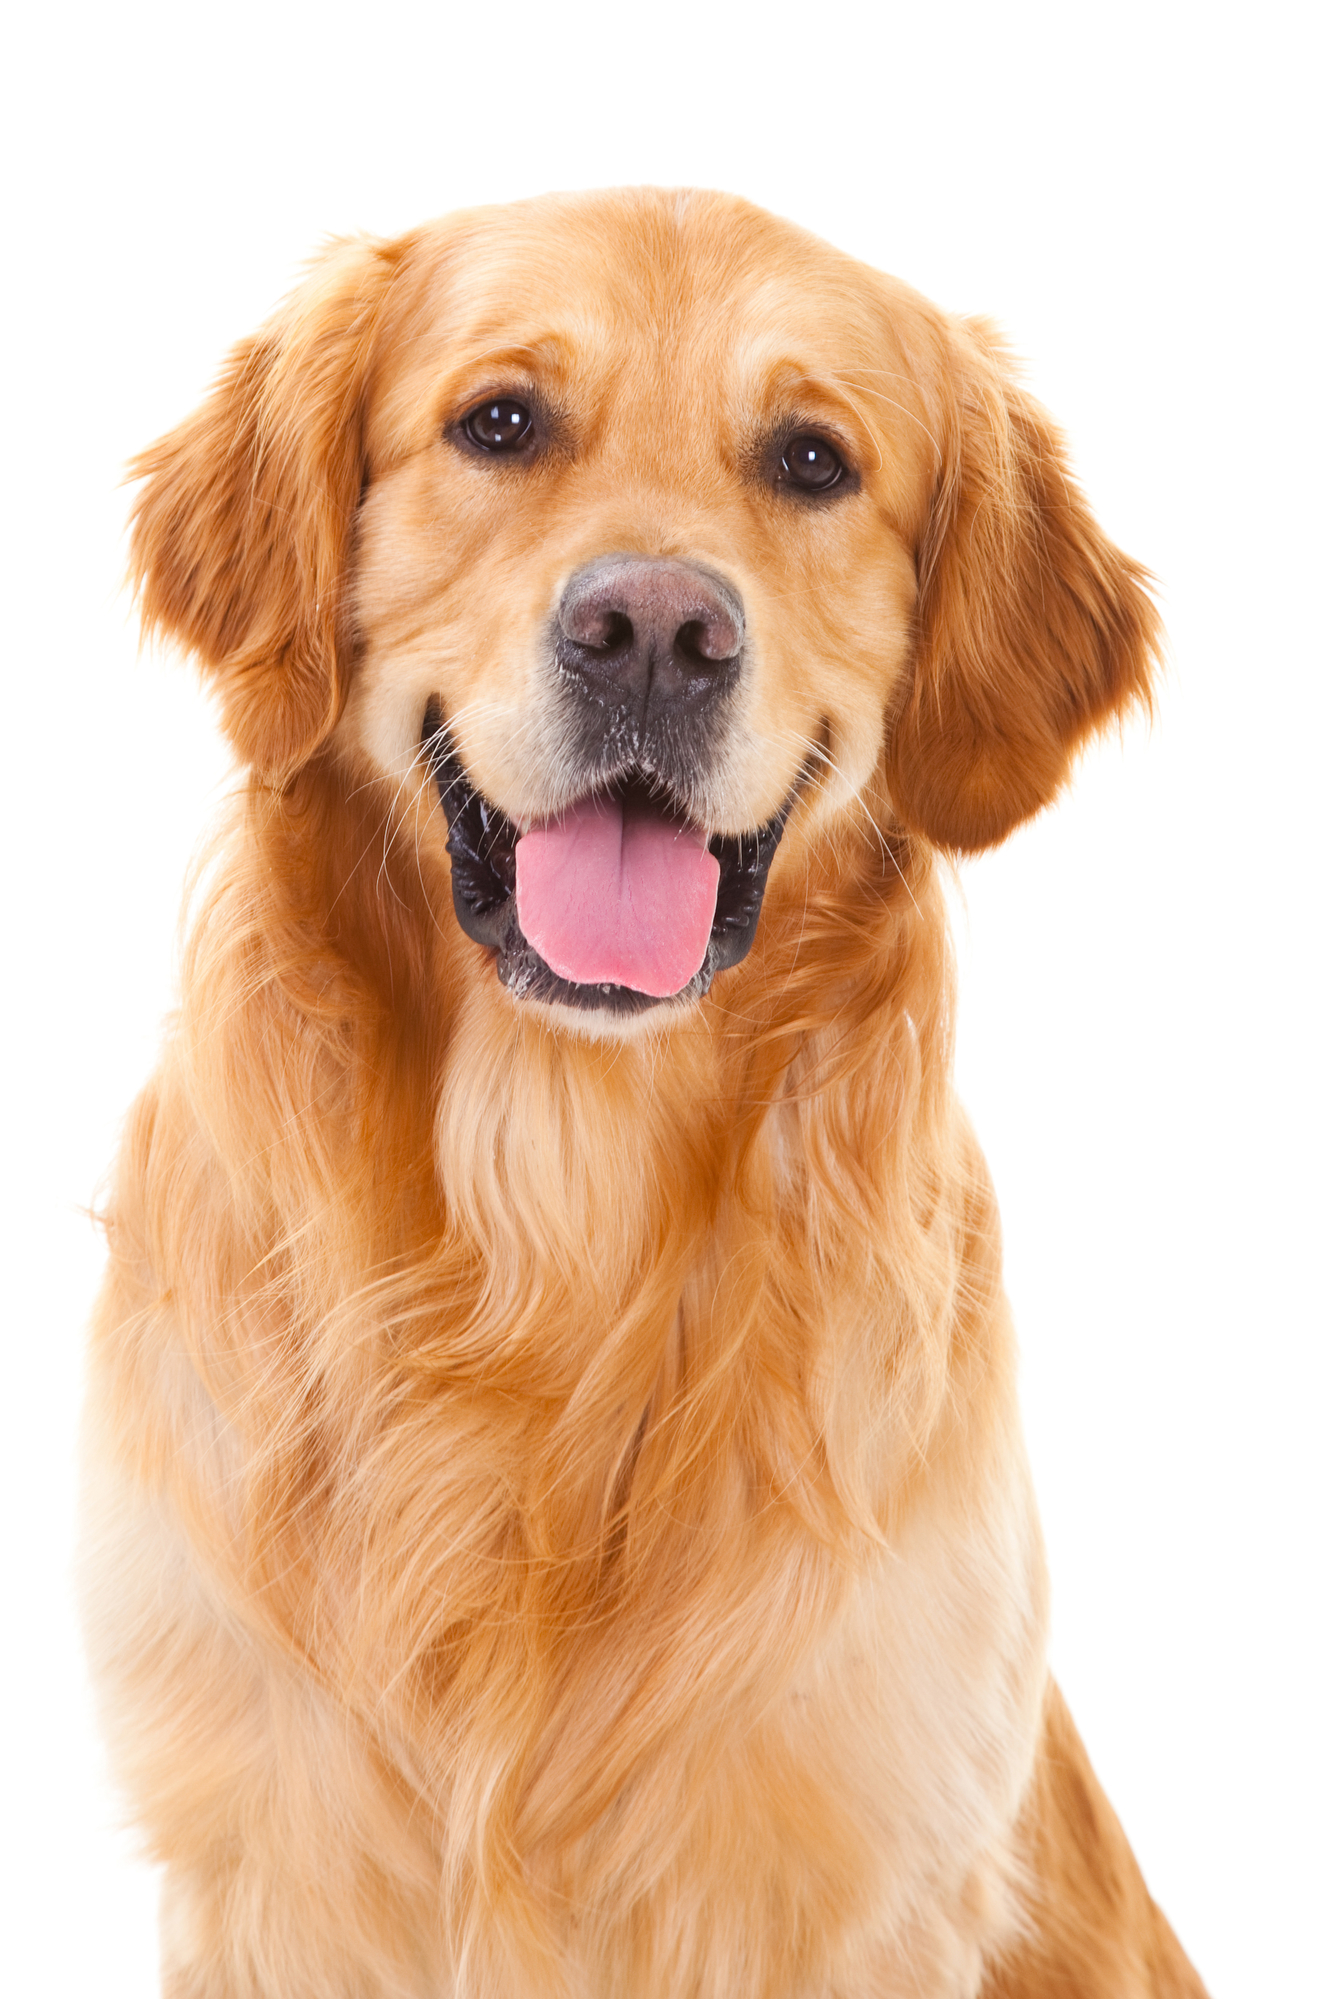 Conclusion I Think That Golden Retrievers